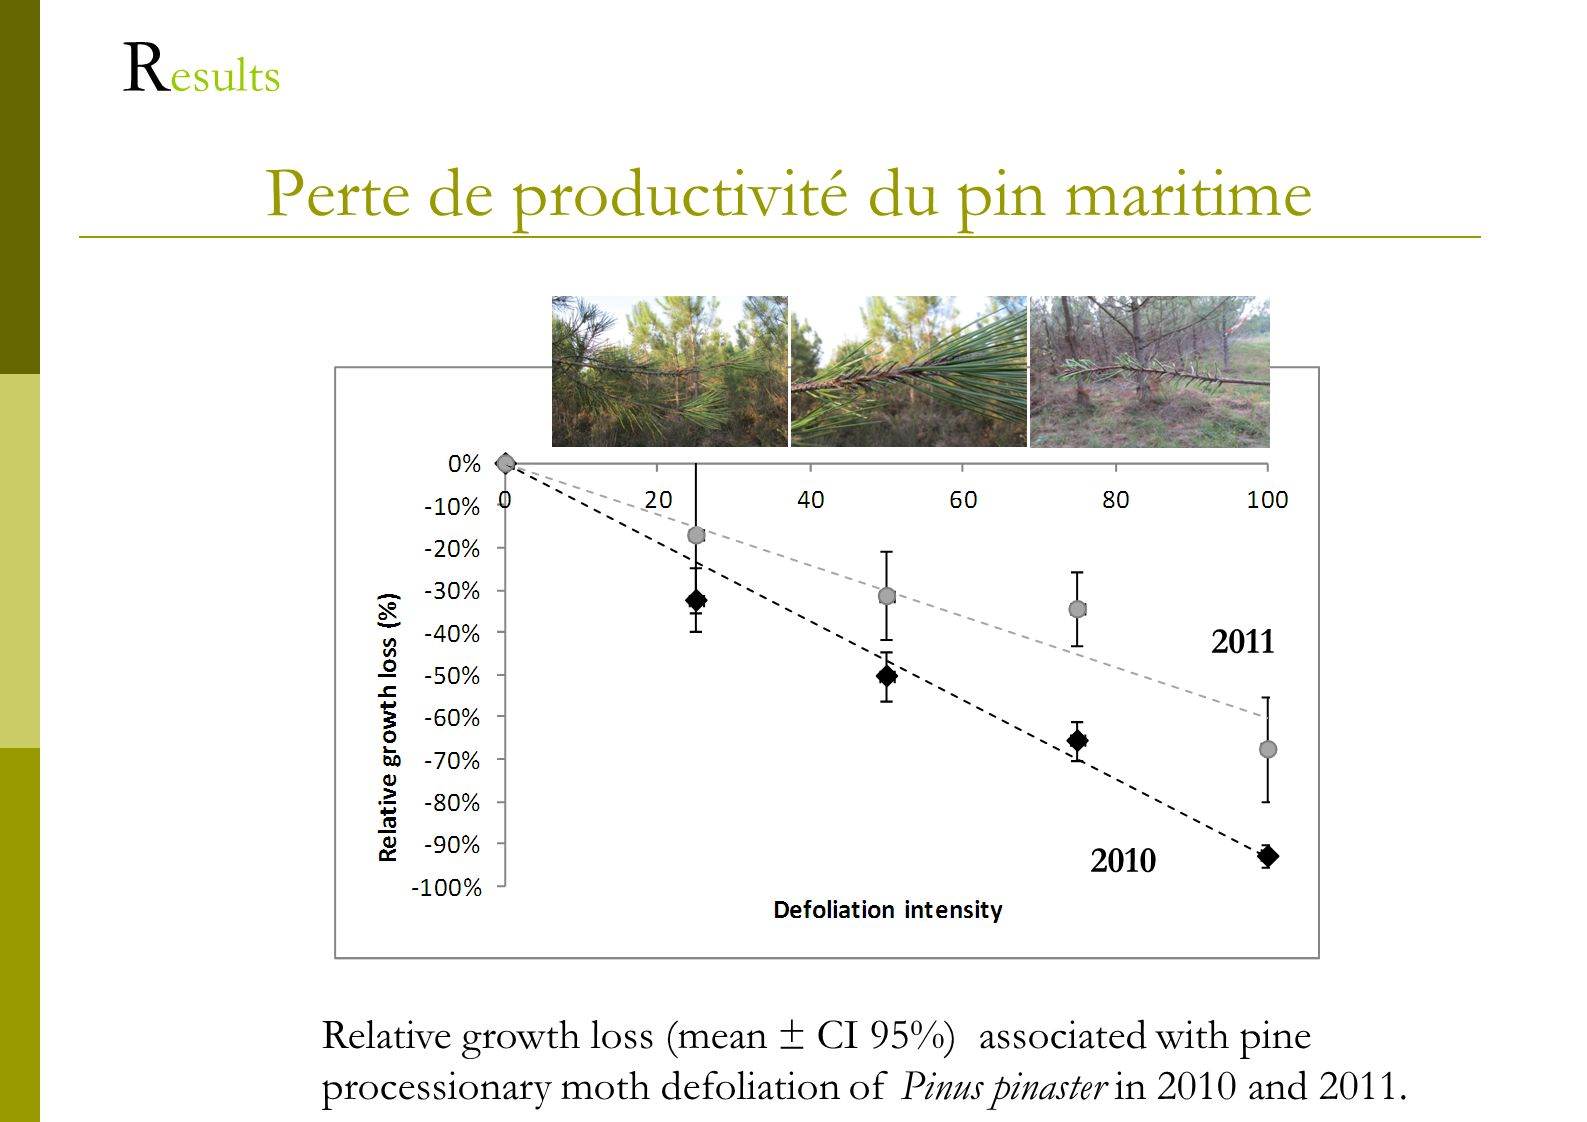 Perte de productivité du pin maritime R esults Relative growth loss (mean ± CI 95%) associated with pine processionary moth defoliation of Pinus pinaster in 2010 and 2011.